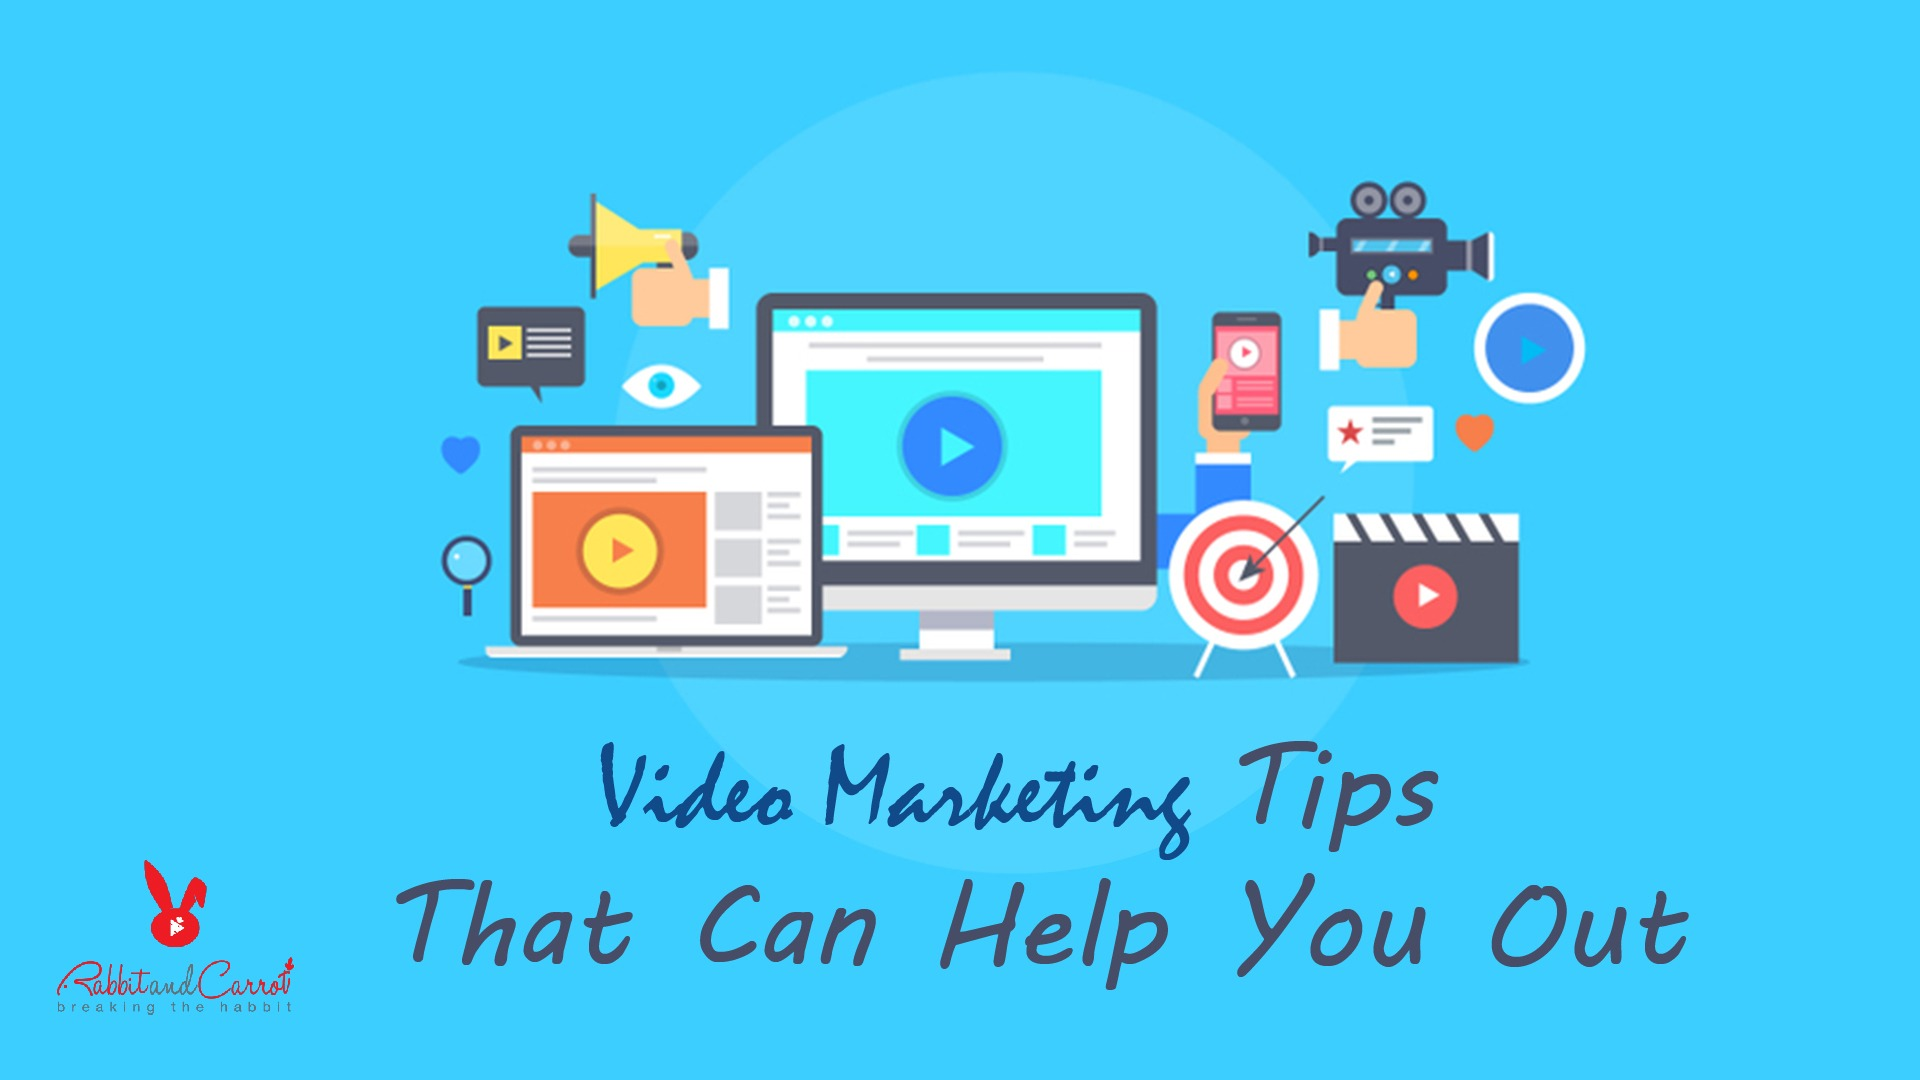 Video Marketing Tips That Can Help You Out